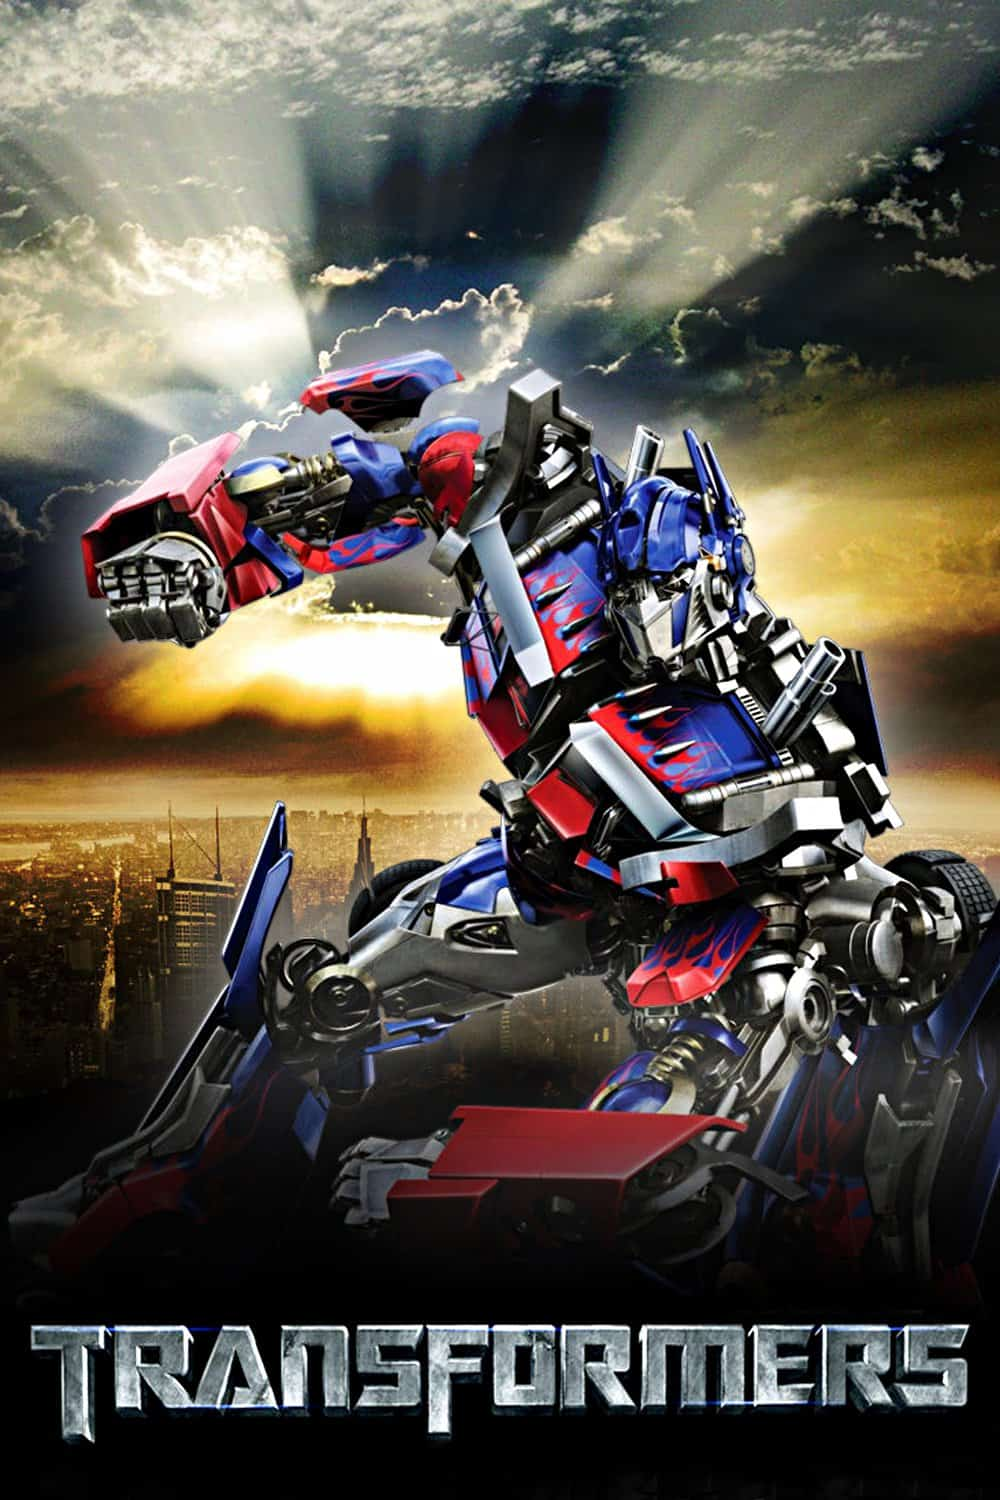 Transformers, 2007